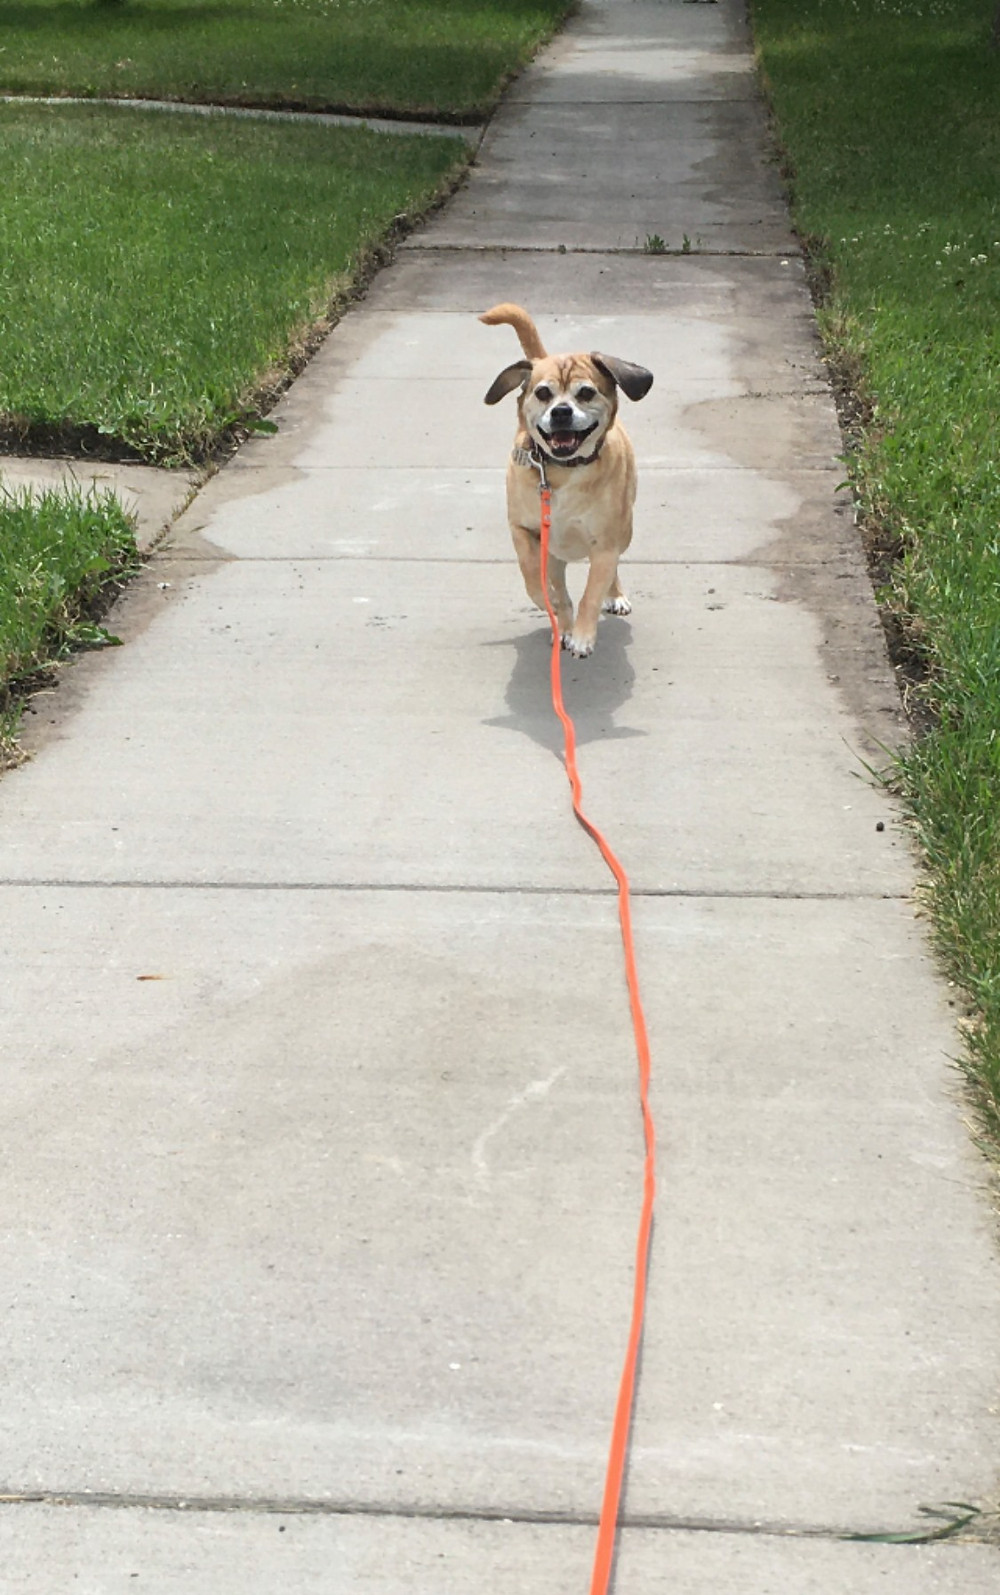 A small fawn colored dog on a 15 foot orange leash is running towards the handler who is not pictured.